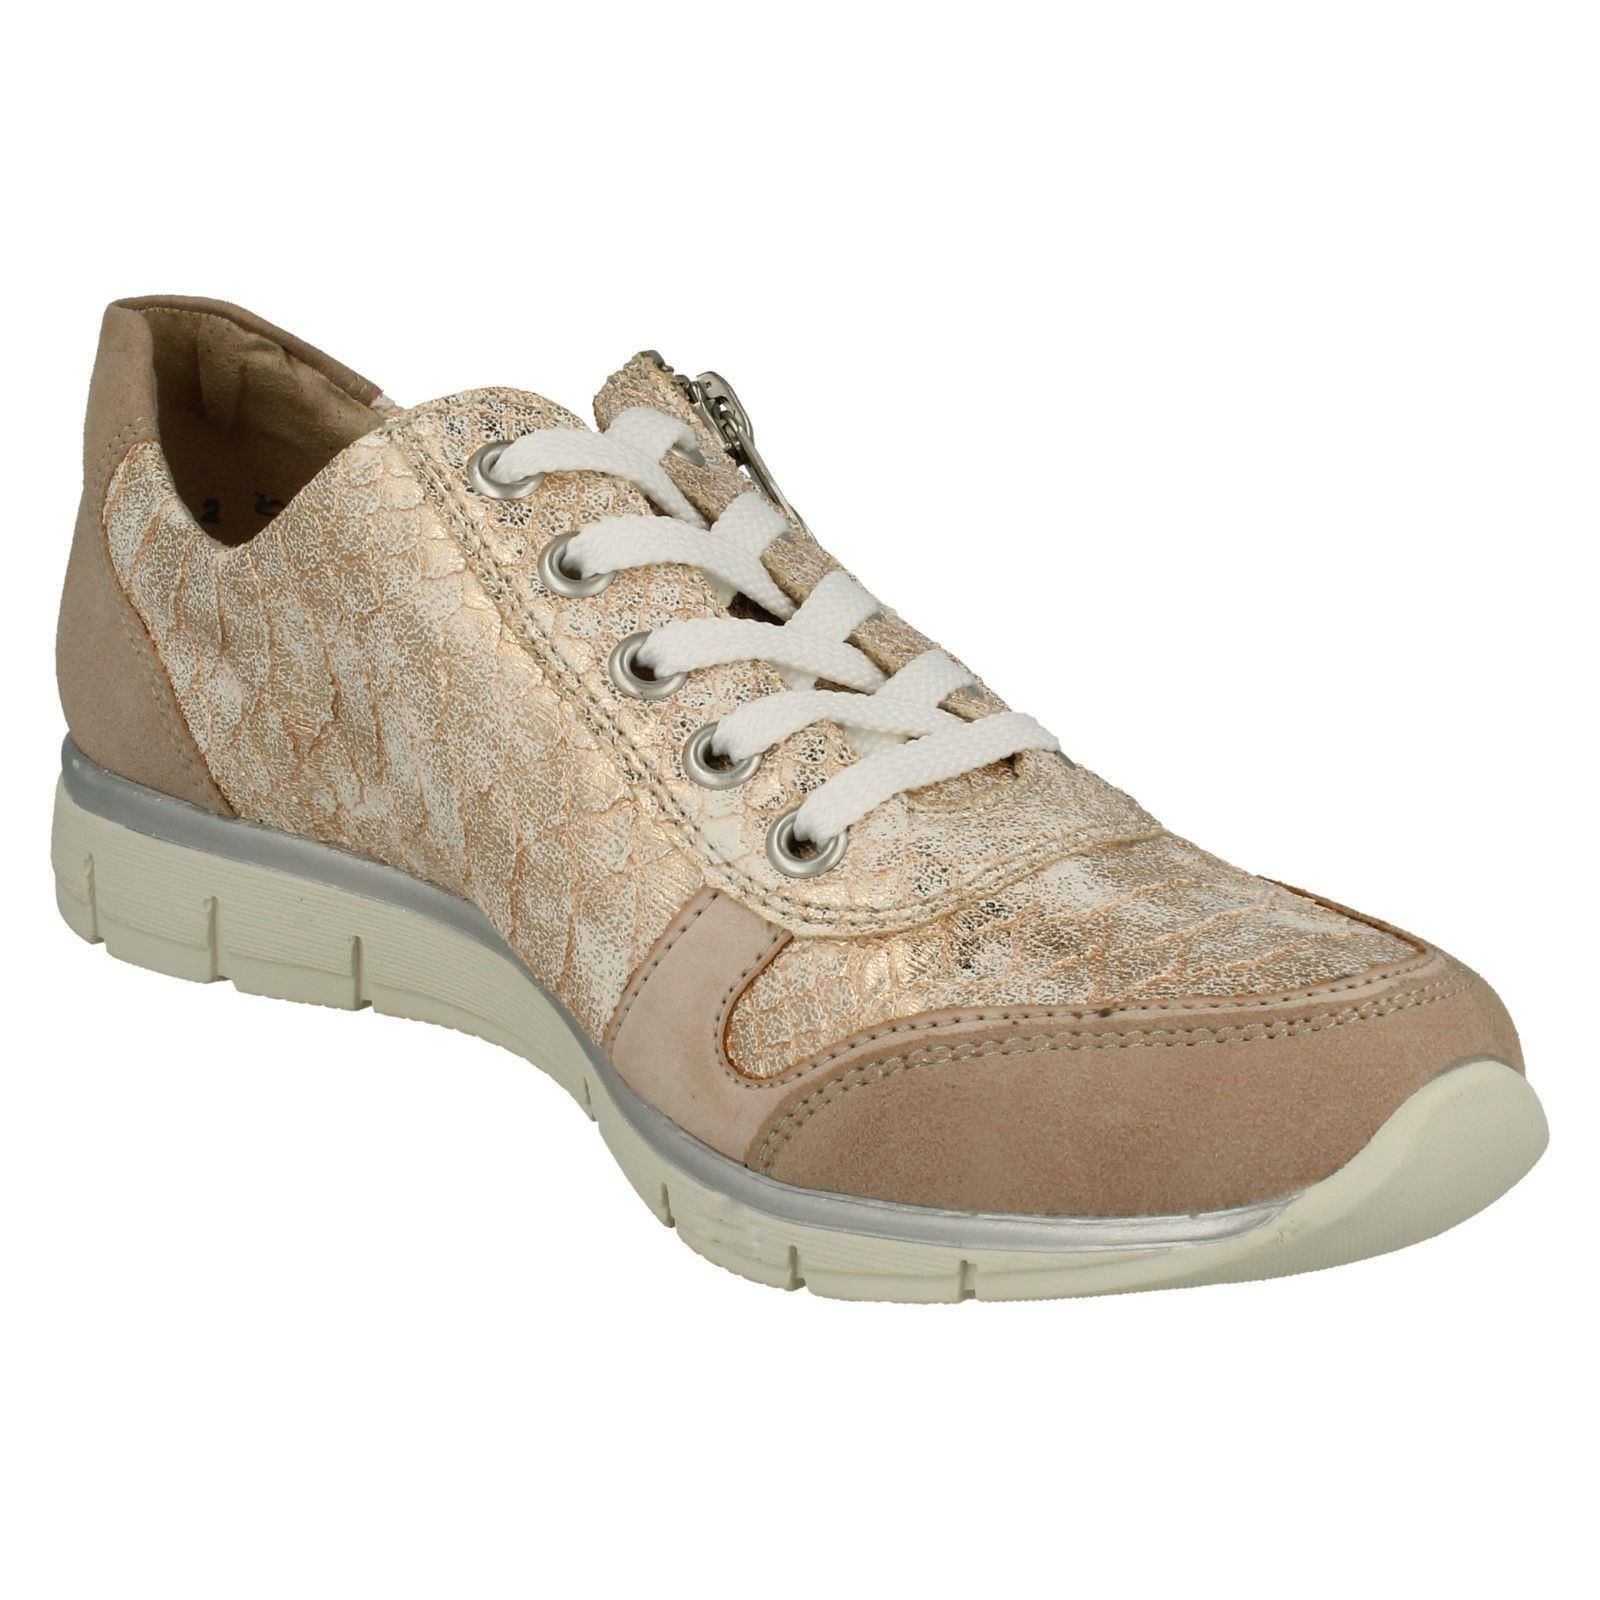 Ladies Rieker Lace Up Trainer Style Shoes N4020